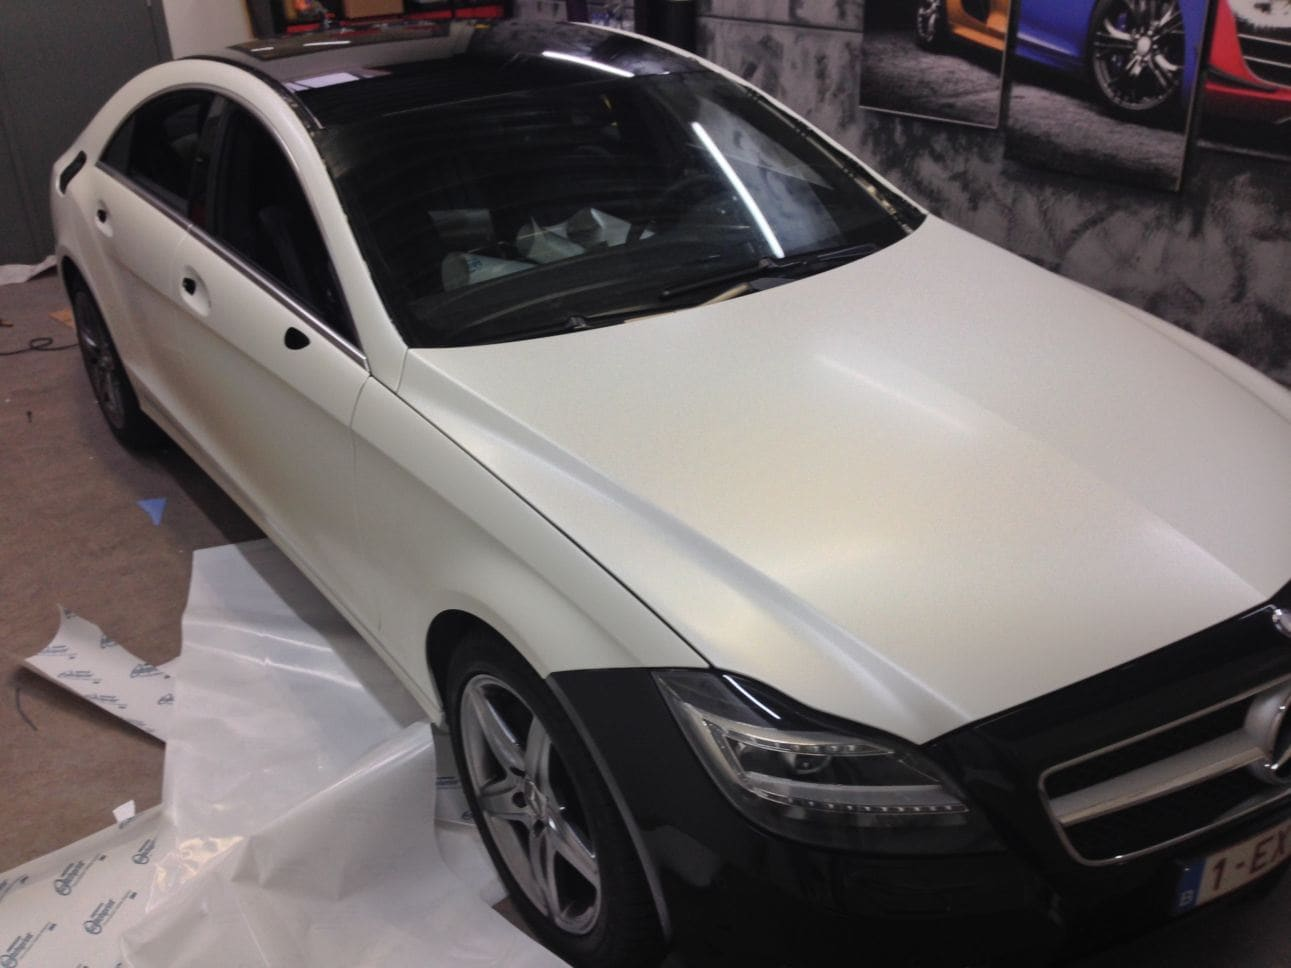 Mercedes CLS met White Satin Pearl Wrap, Carwrapping door Wrapmyride.nu Foto-nr:6184, ©2021